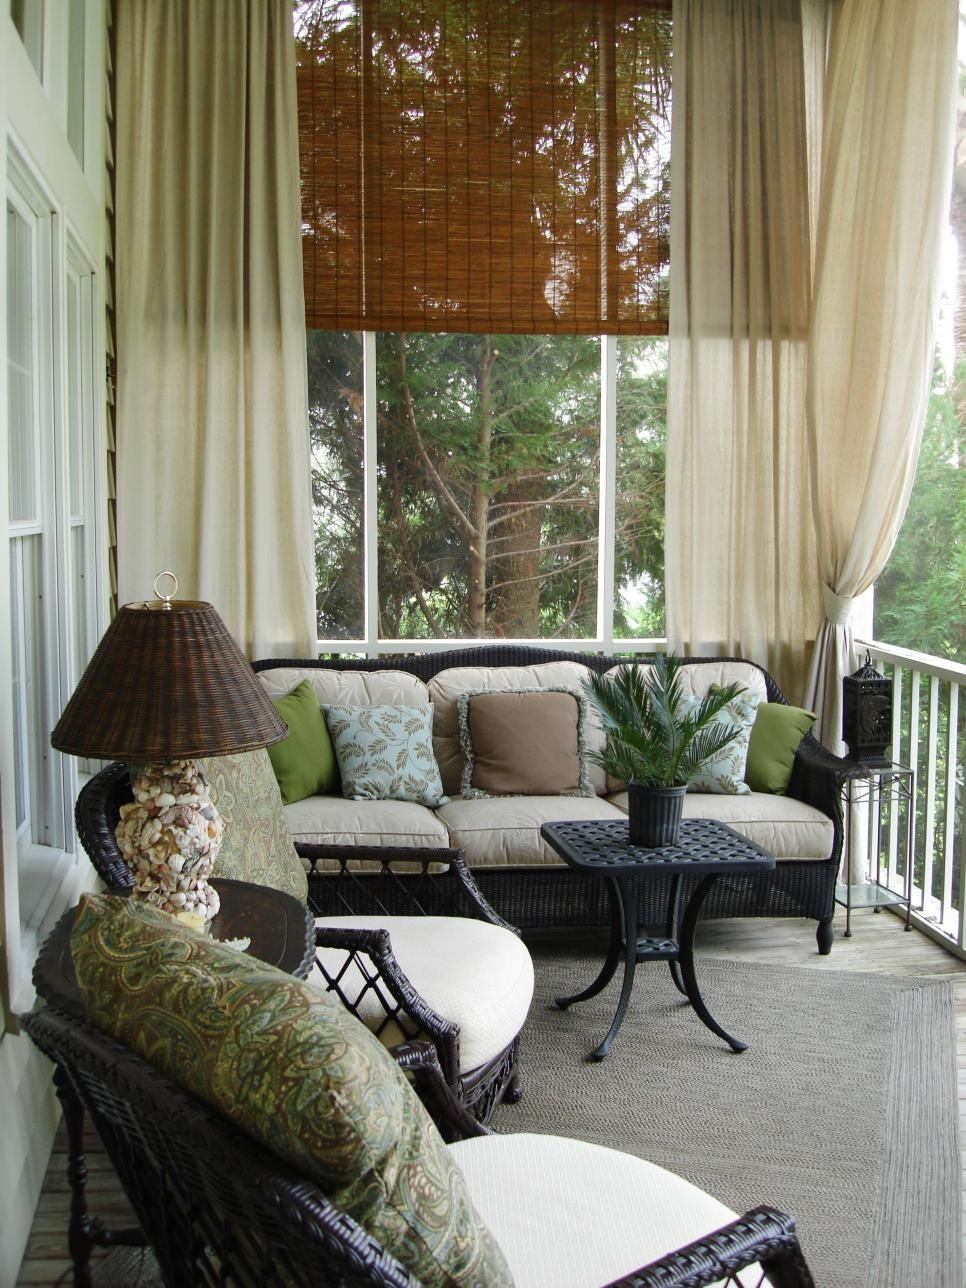 Turn your porch into a room of its own by enclosing it